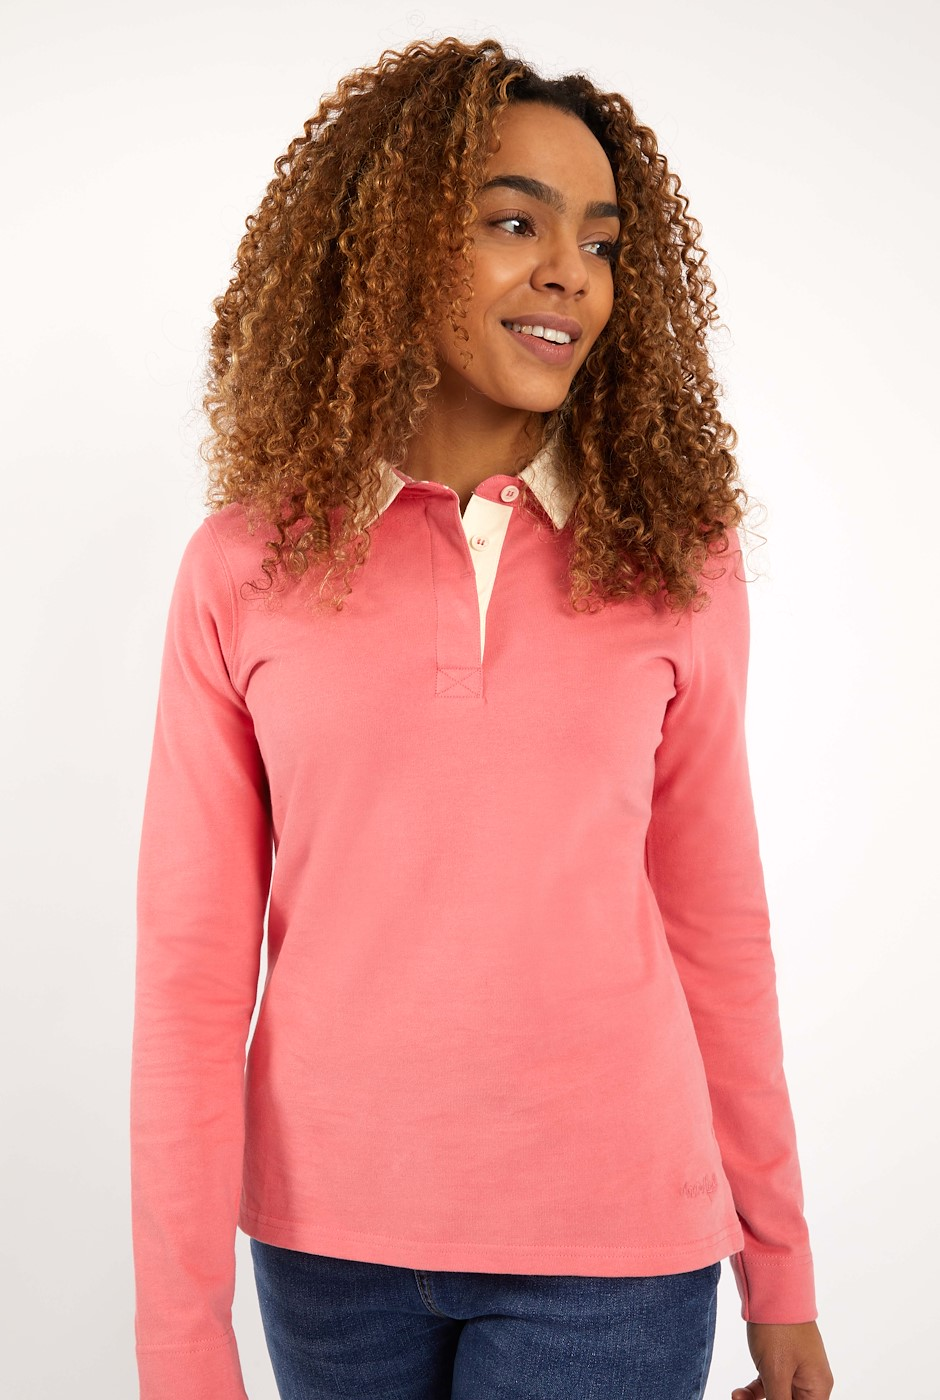 Fern Organic Cotton Rugby Shirt  Tea Rose